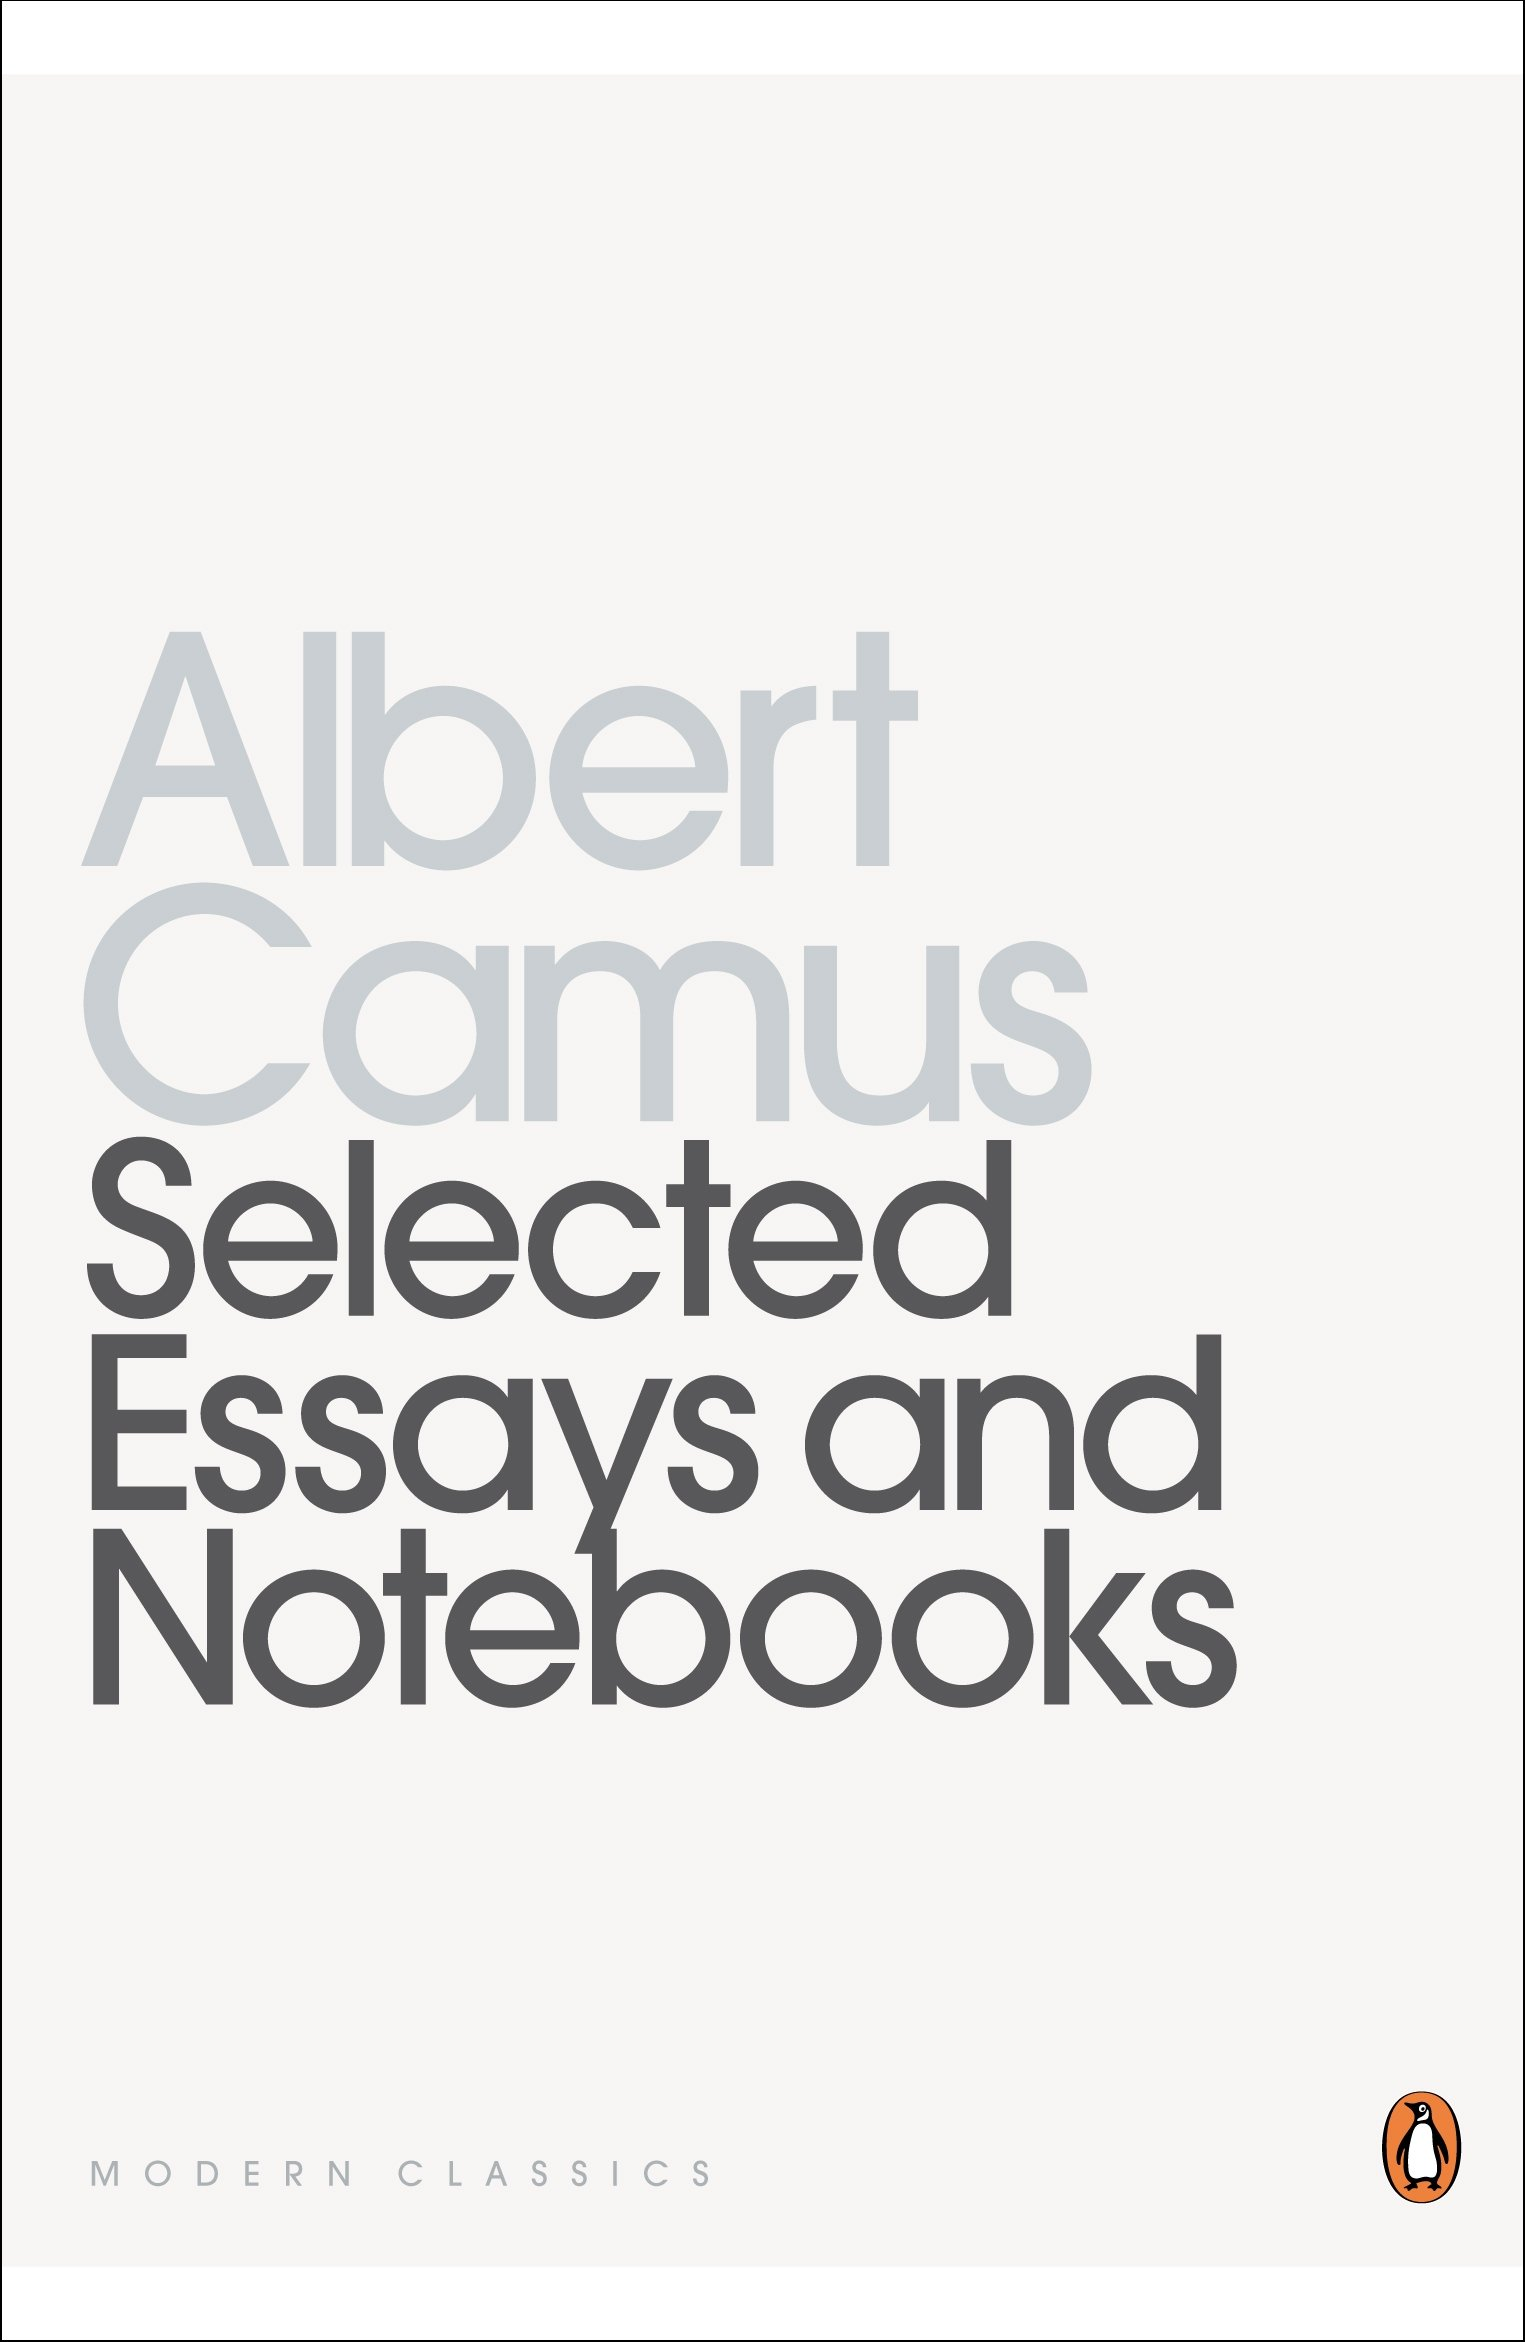 holocaust essay cover letter intro examples for essays good  essays on respect camus essays essay on the holocaust essay about respect yl o bufwl camus